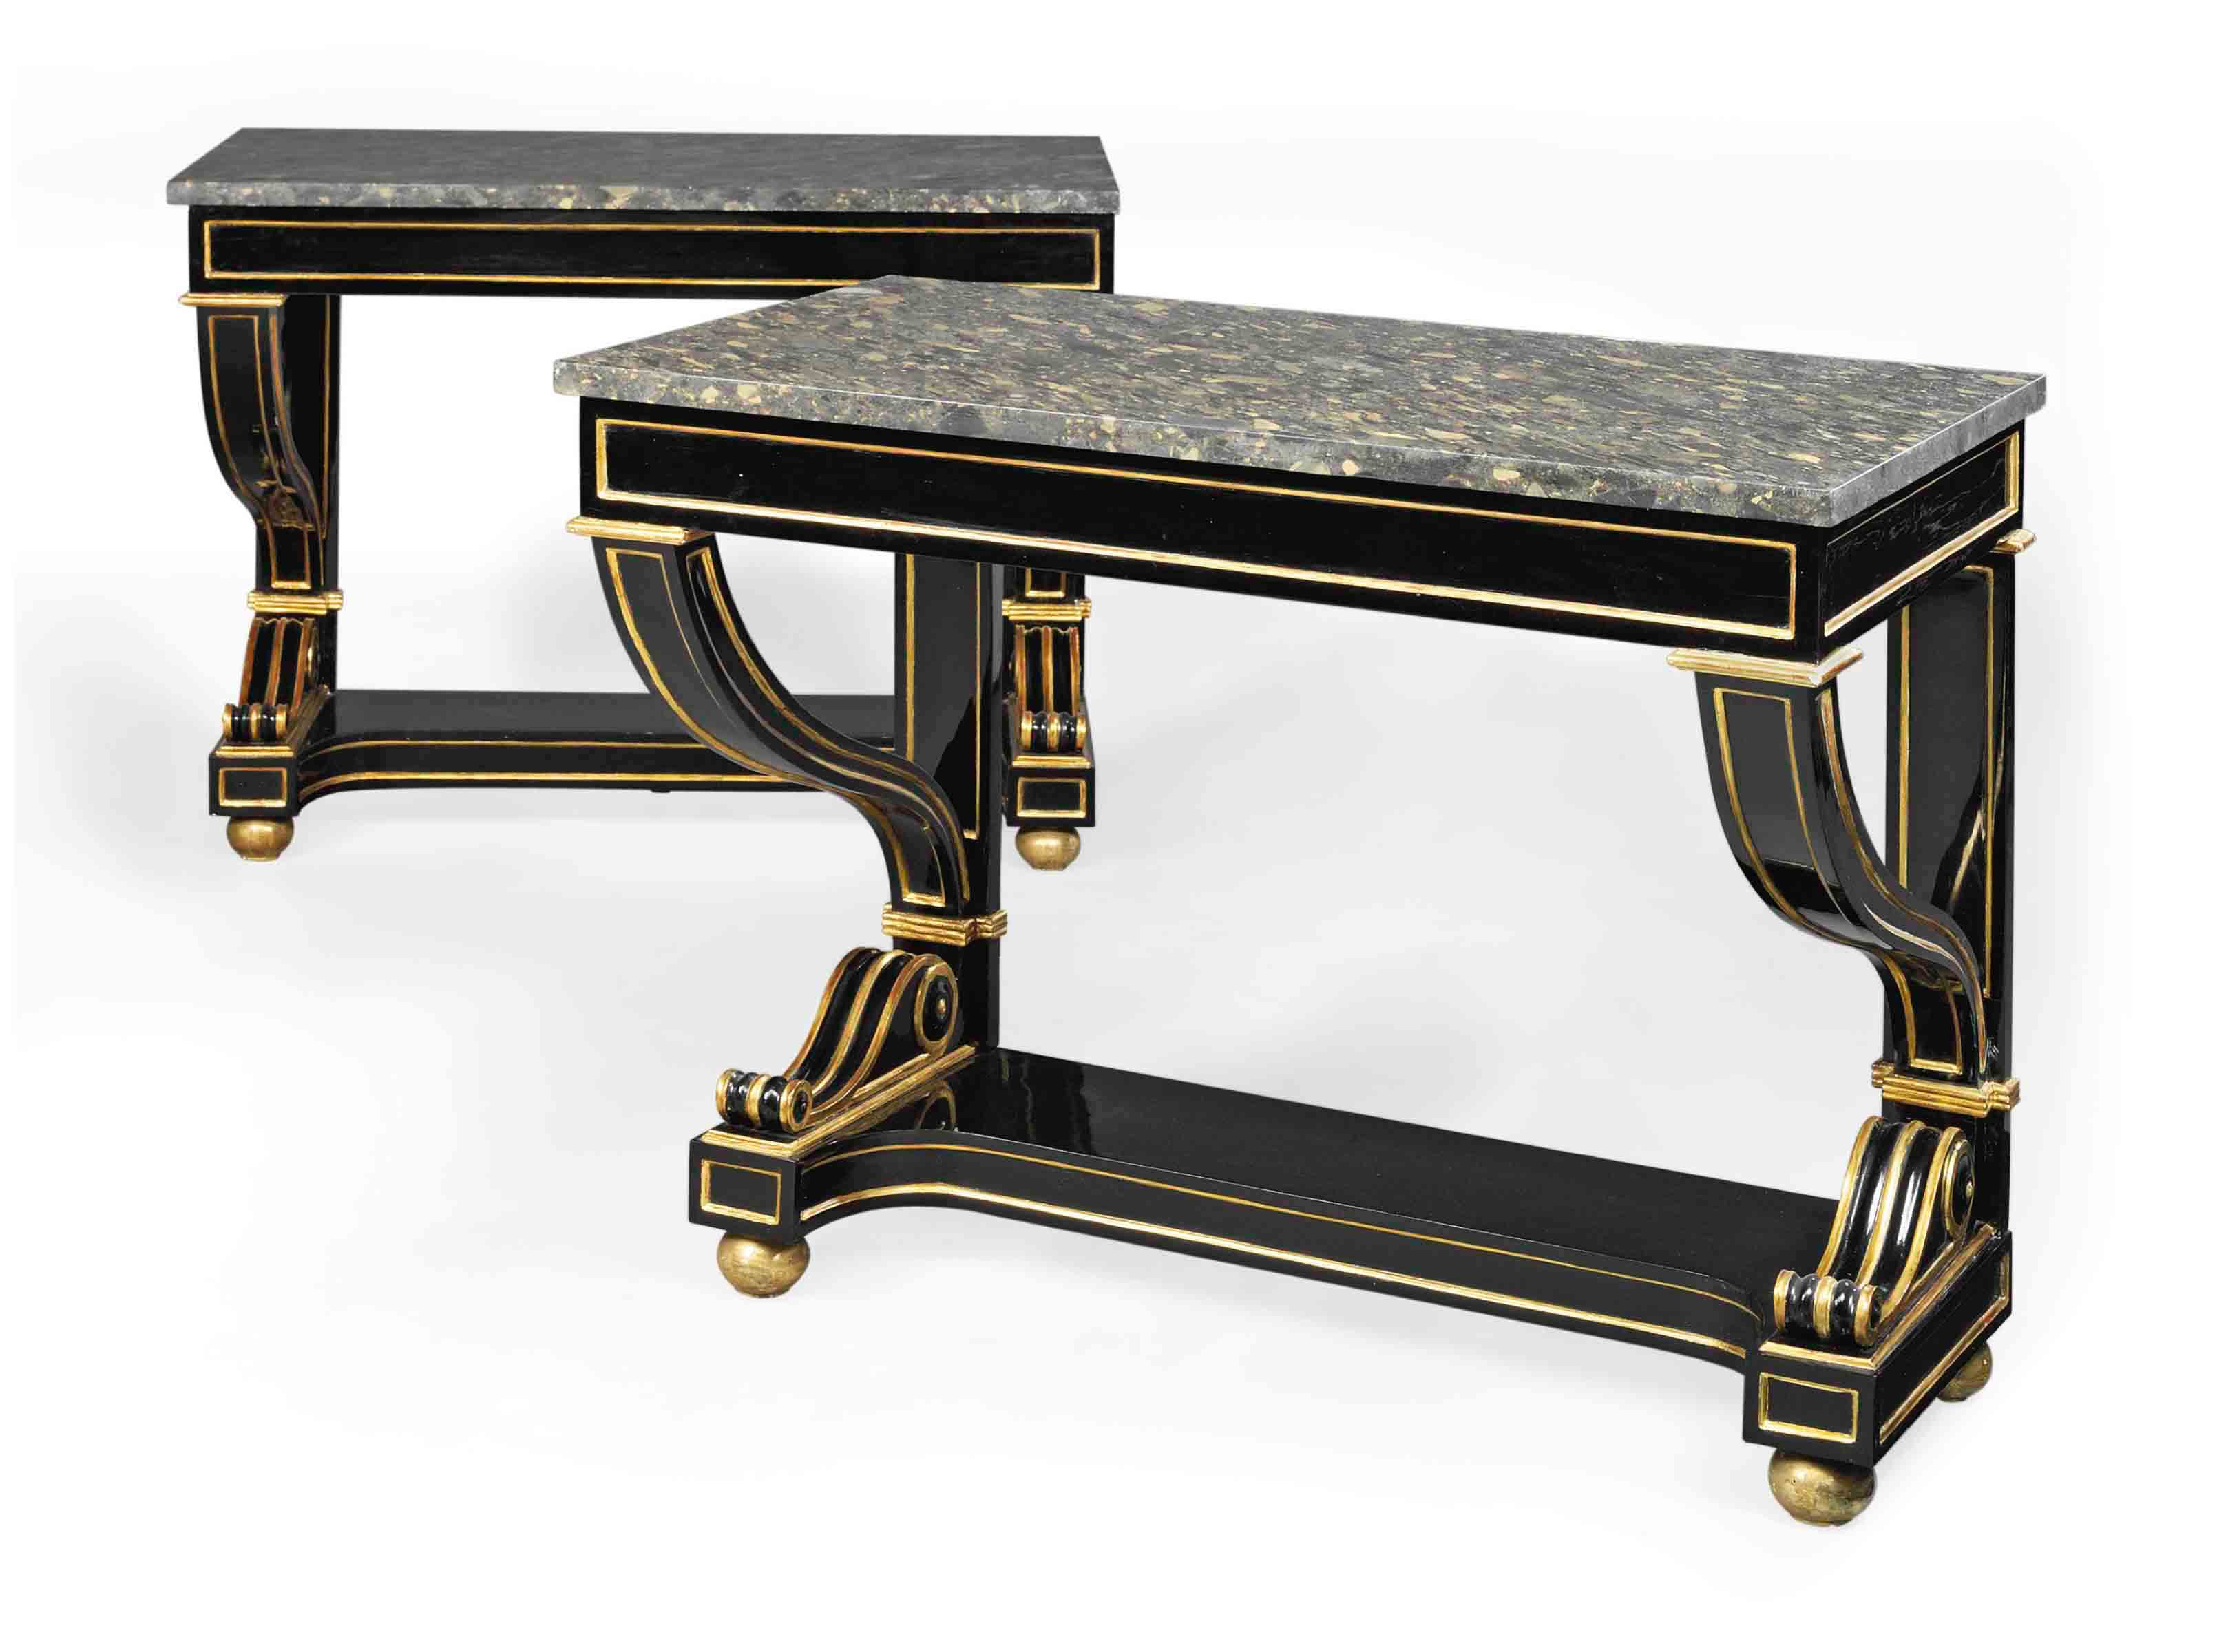 A PAIR OF ITALIAN PARCEL-GILT AND EBONIZED CONSOLE TABLES